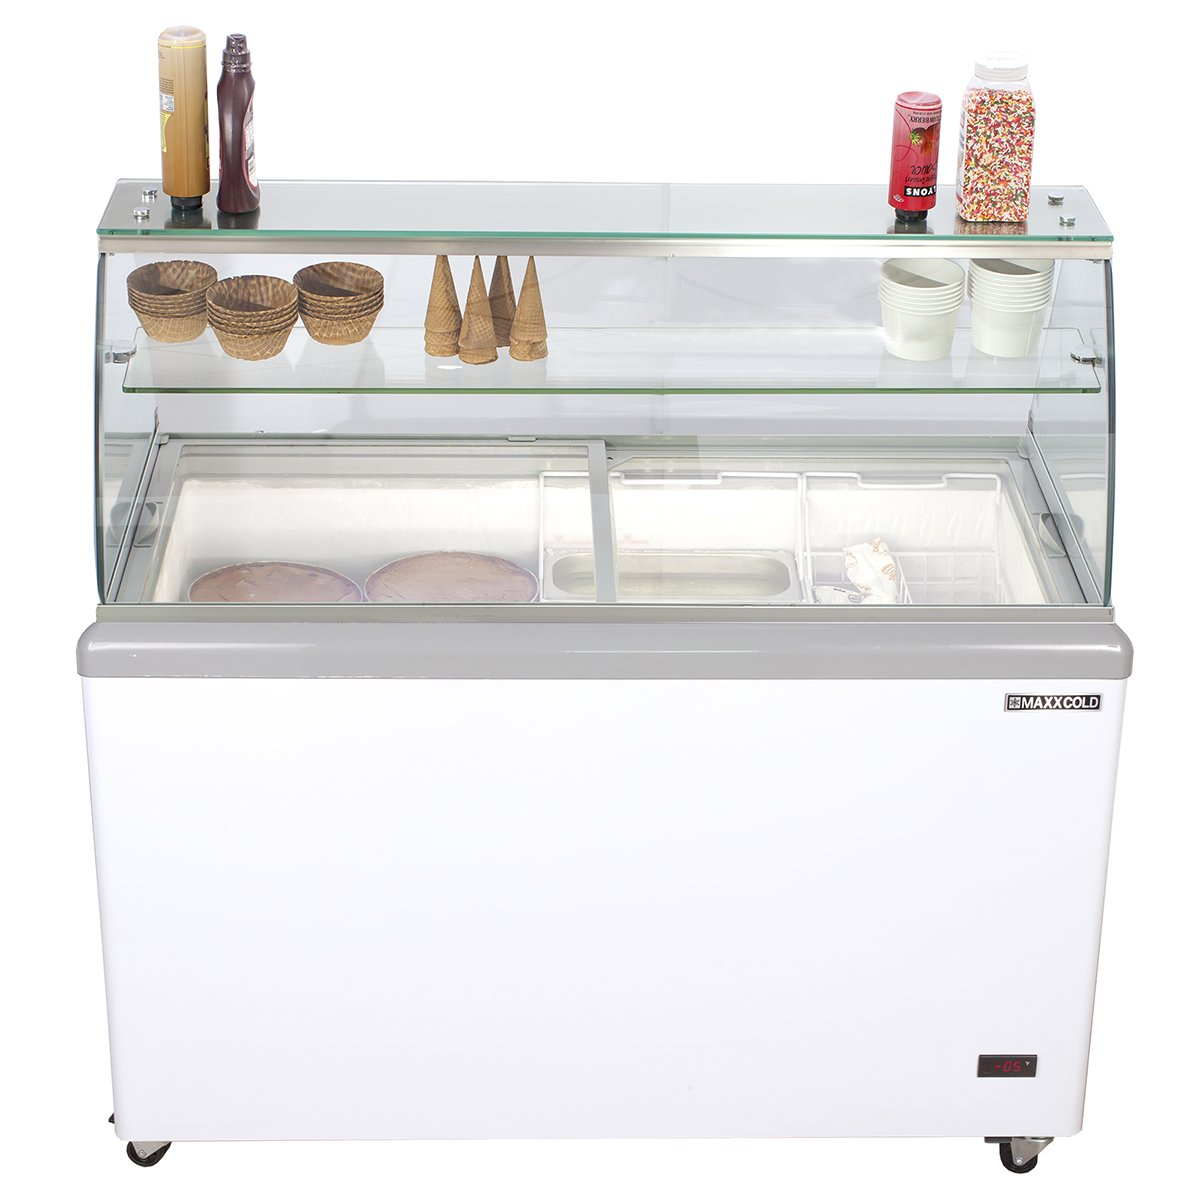 Ice-cream Dipping Cabinets 8 GN 1/3